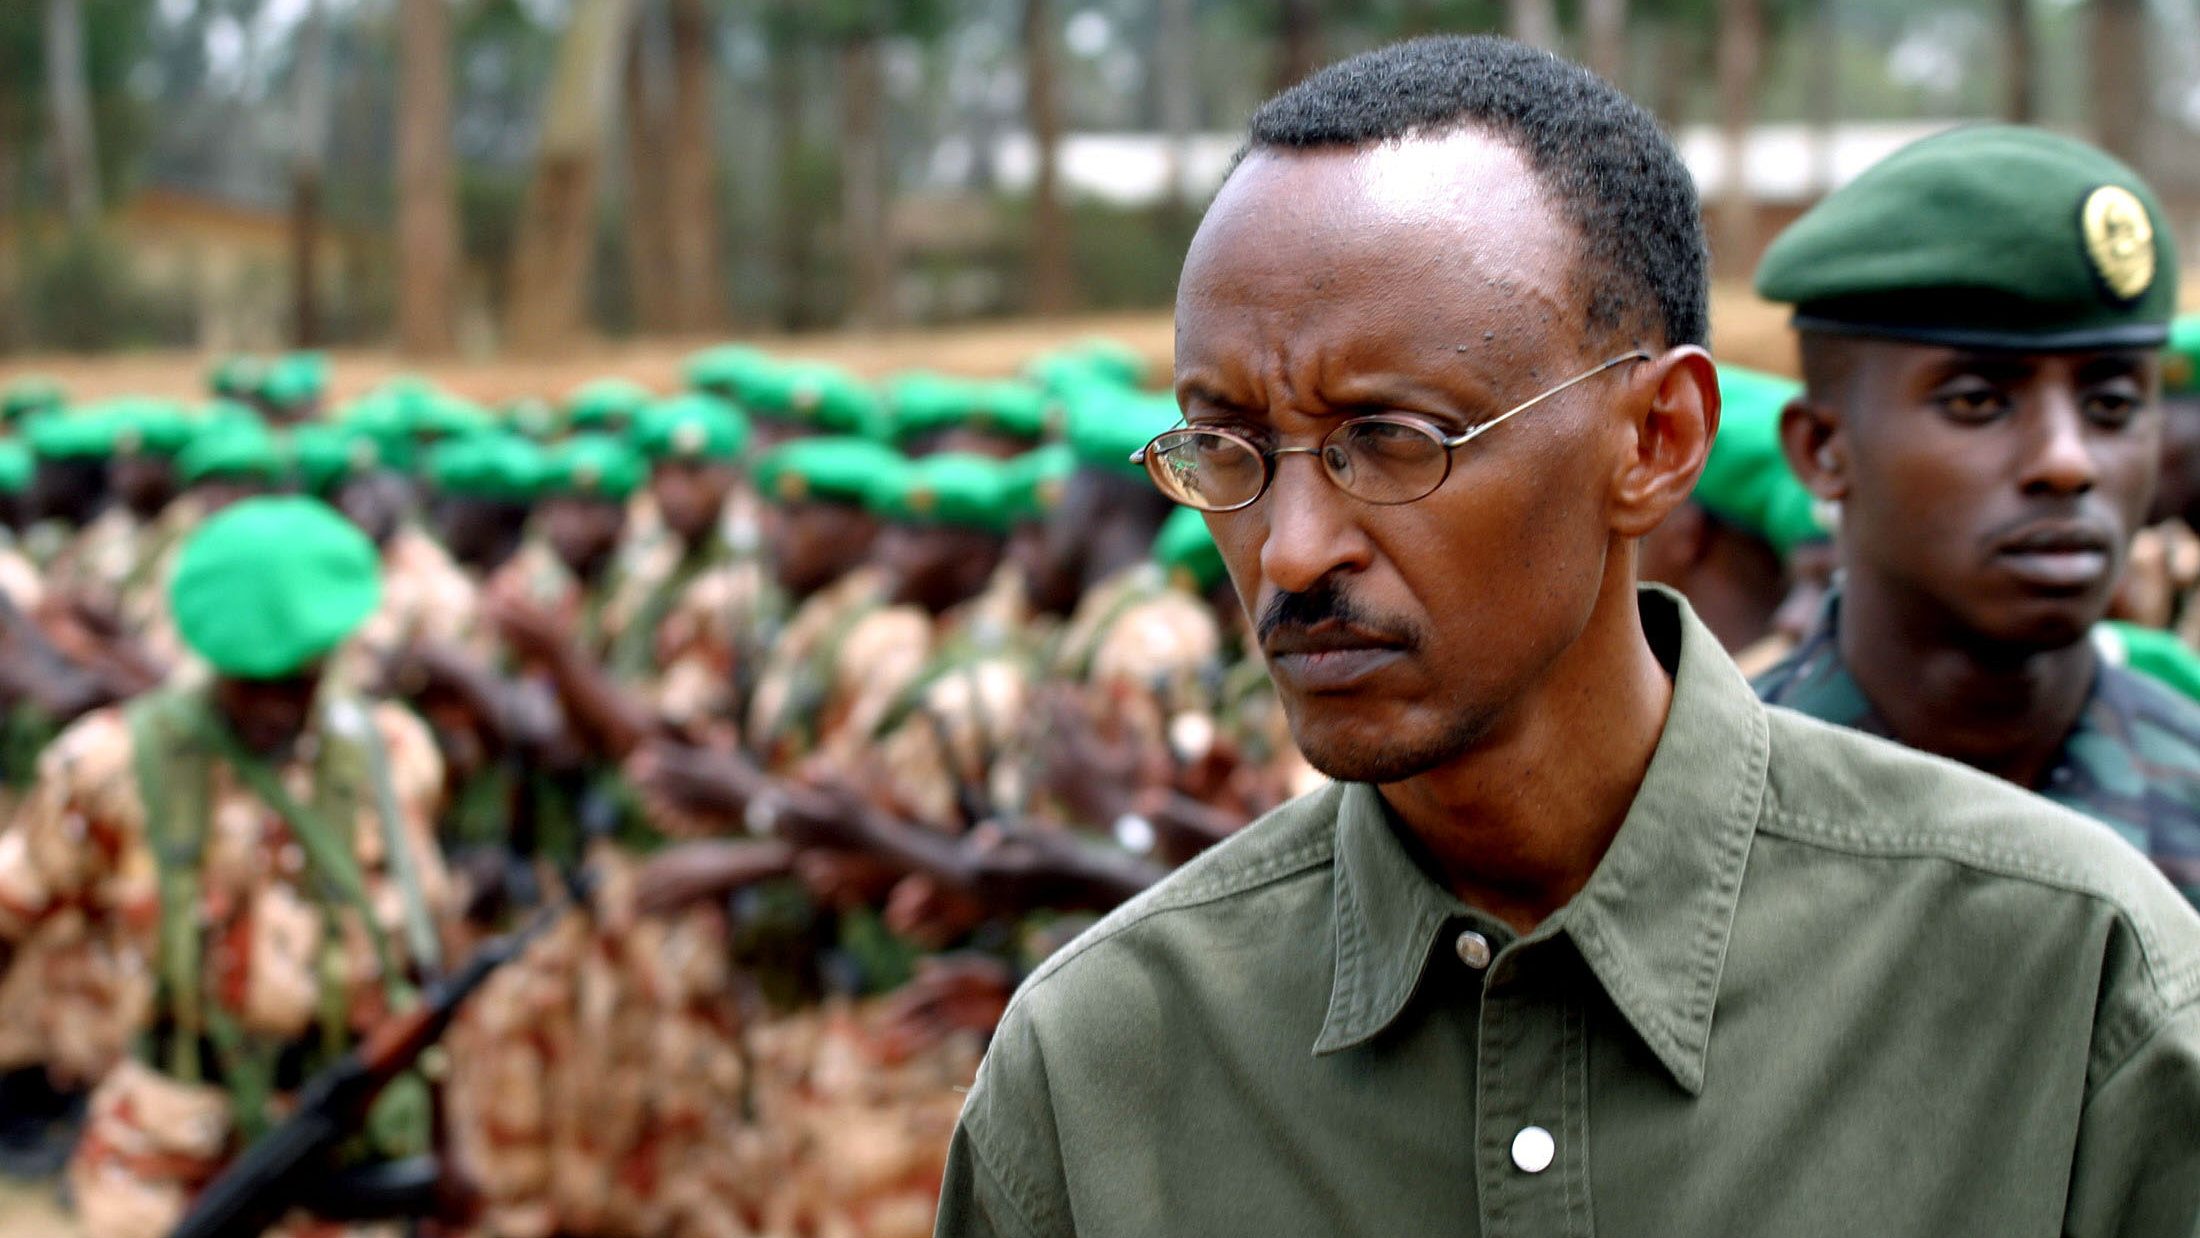 Rwandan President Paul Kagame inspects the 154 army troops during a ceremony in Kigali, August 14, 2004 before the soldiers deploy to Sudan as part of an African Union force to protect ceasefire observers in the country's troubled Darfur region.